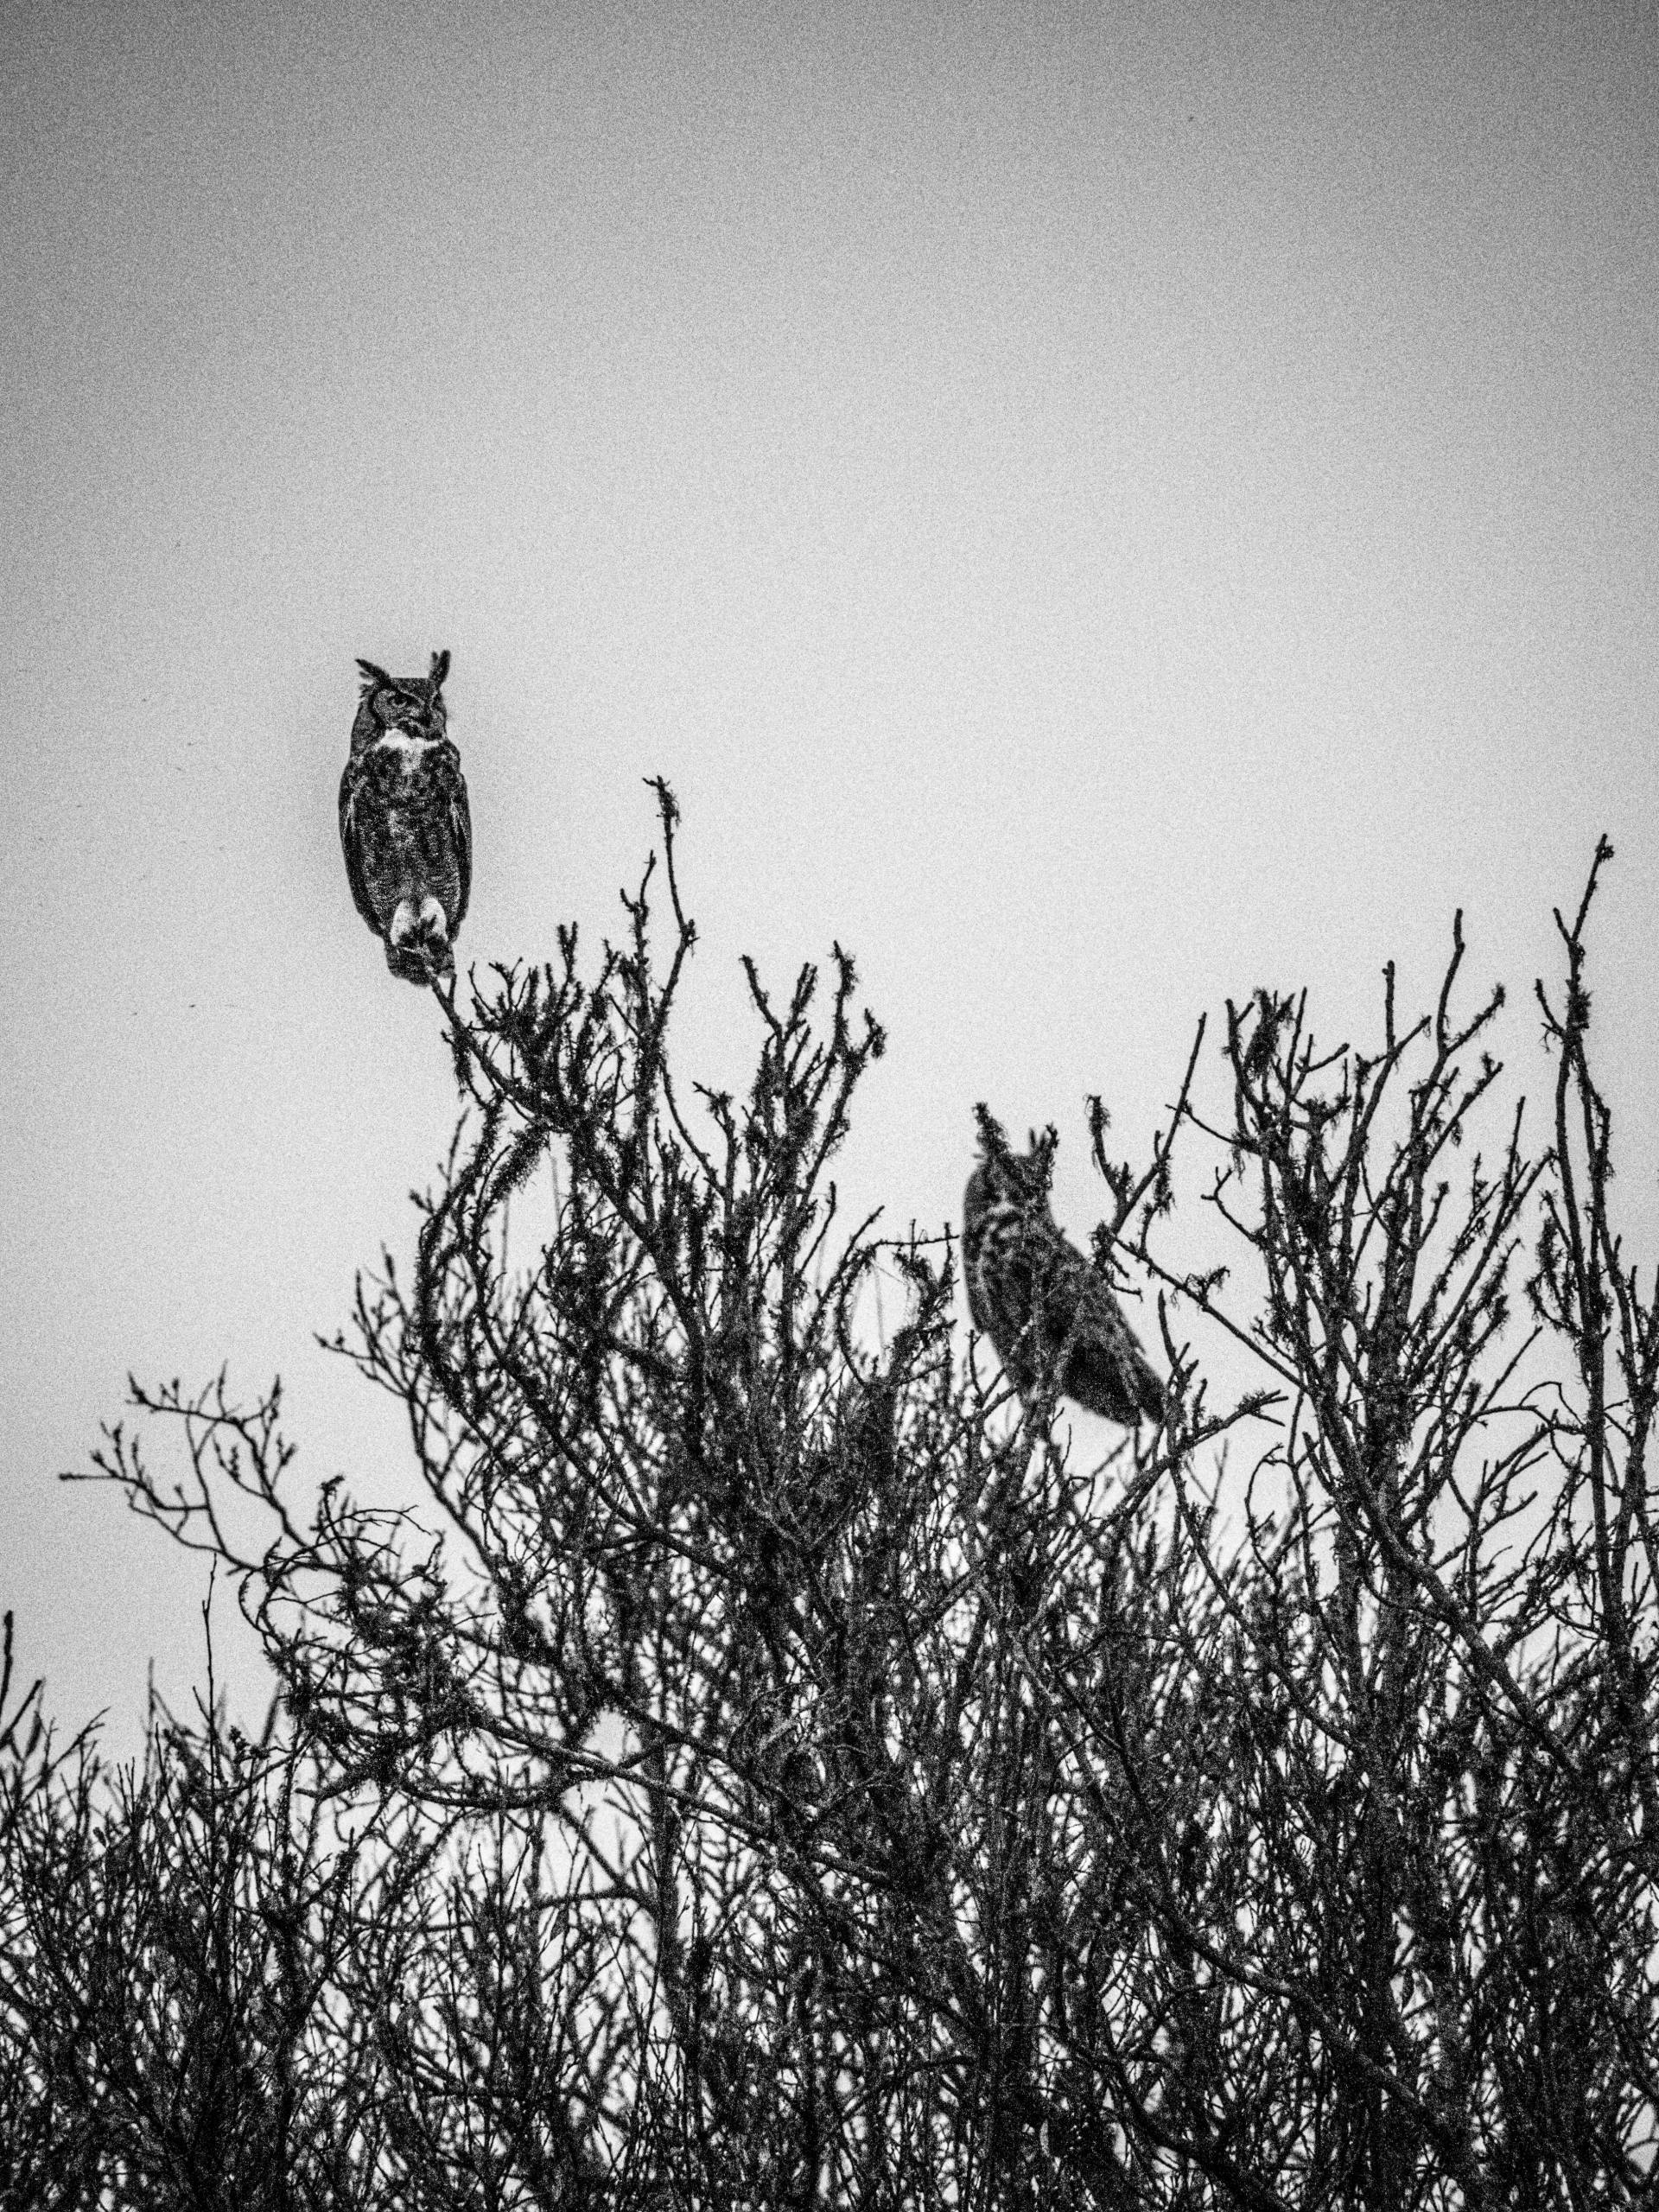 Duetting Great Horned Owls